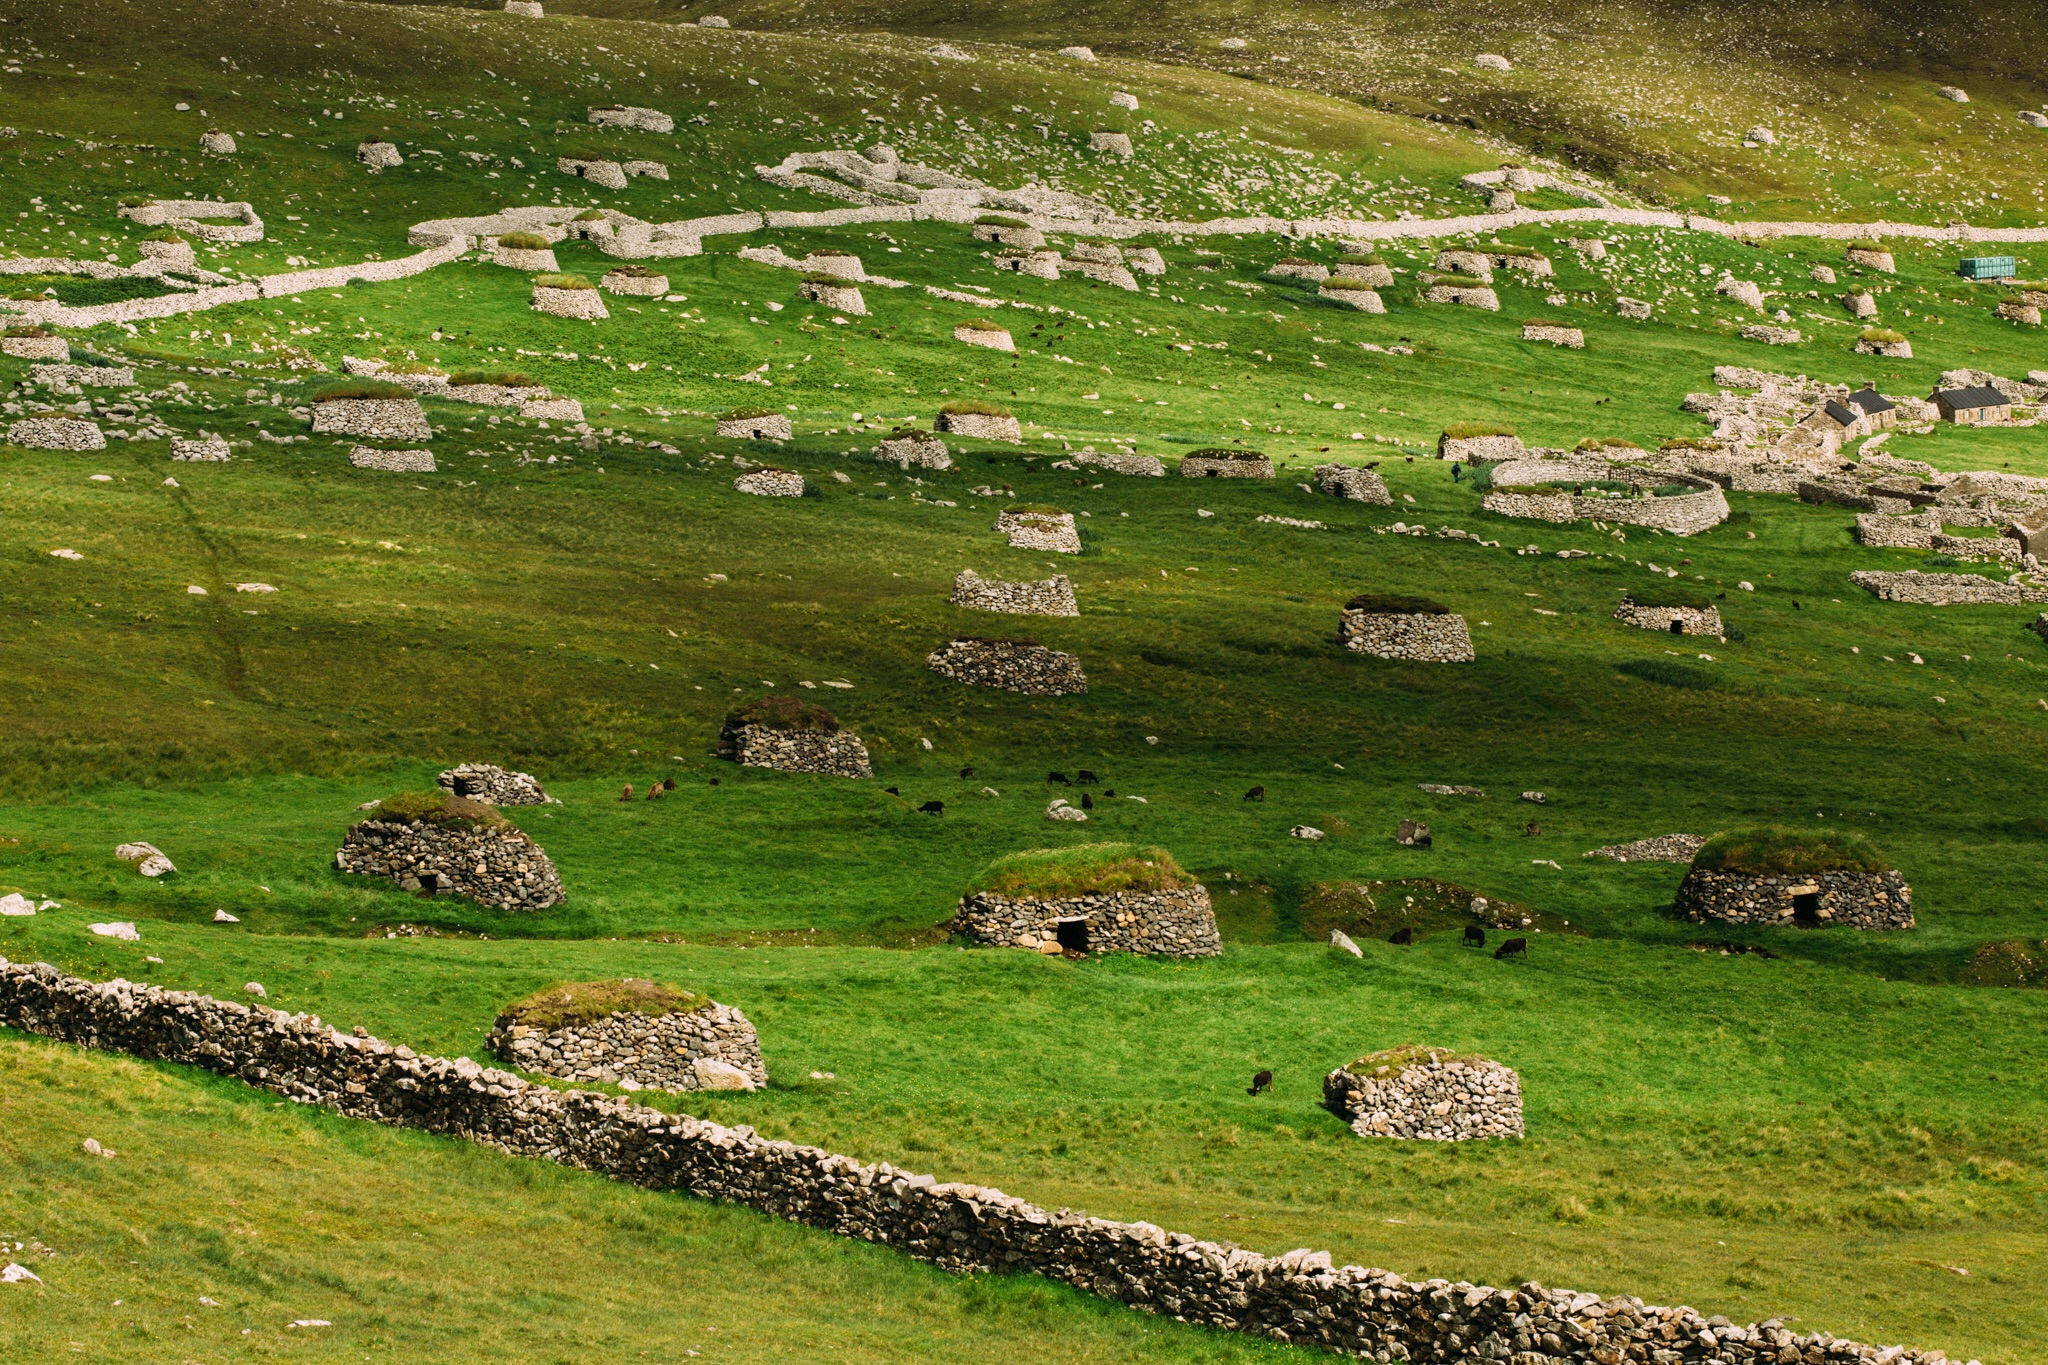 It's estimated that St Kilda was populated for around 3500 years before being evacuated in August 1930. That takes the original population back to the Bronze Age. I'm so curious as to how they got there, and survived for all of those years.